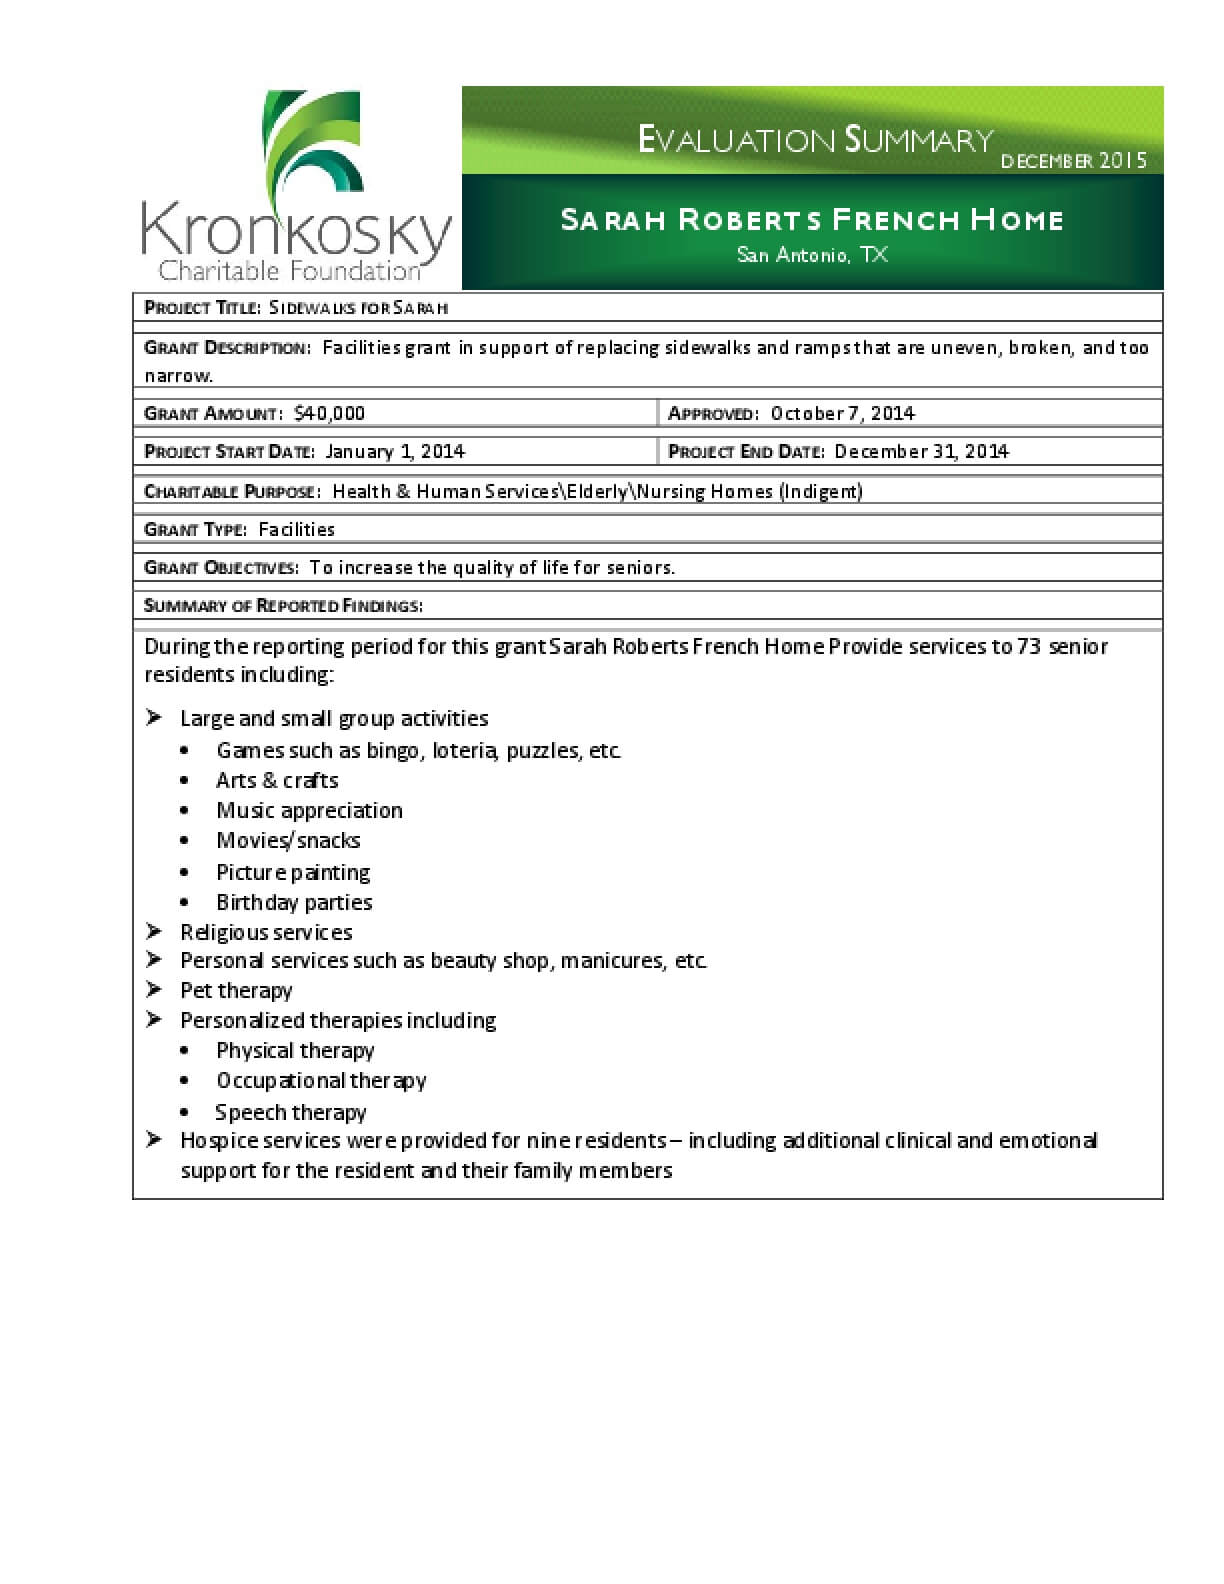 Sarah Roberts French Home Evaluation Summary